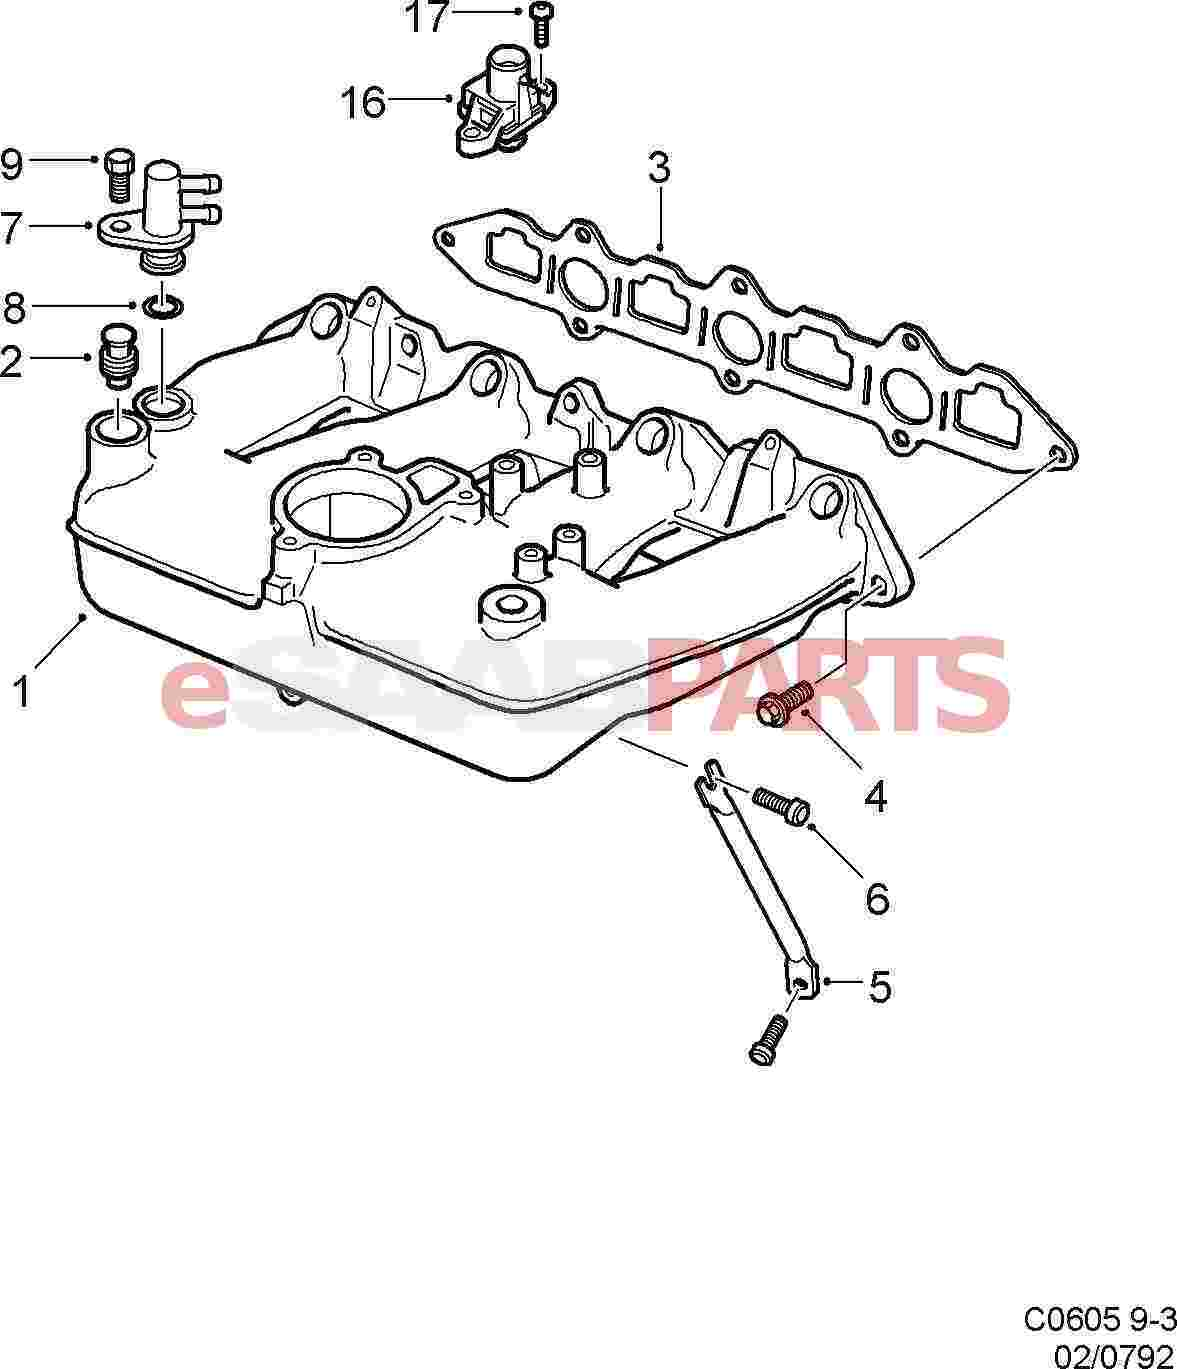 [DIAGRAM] Saab 9 3 Sport Sedan Wiring Diagram FULL Version